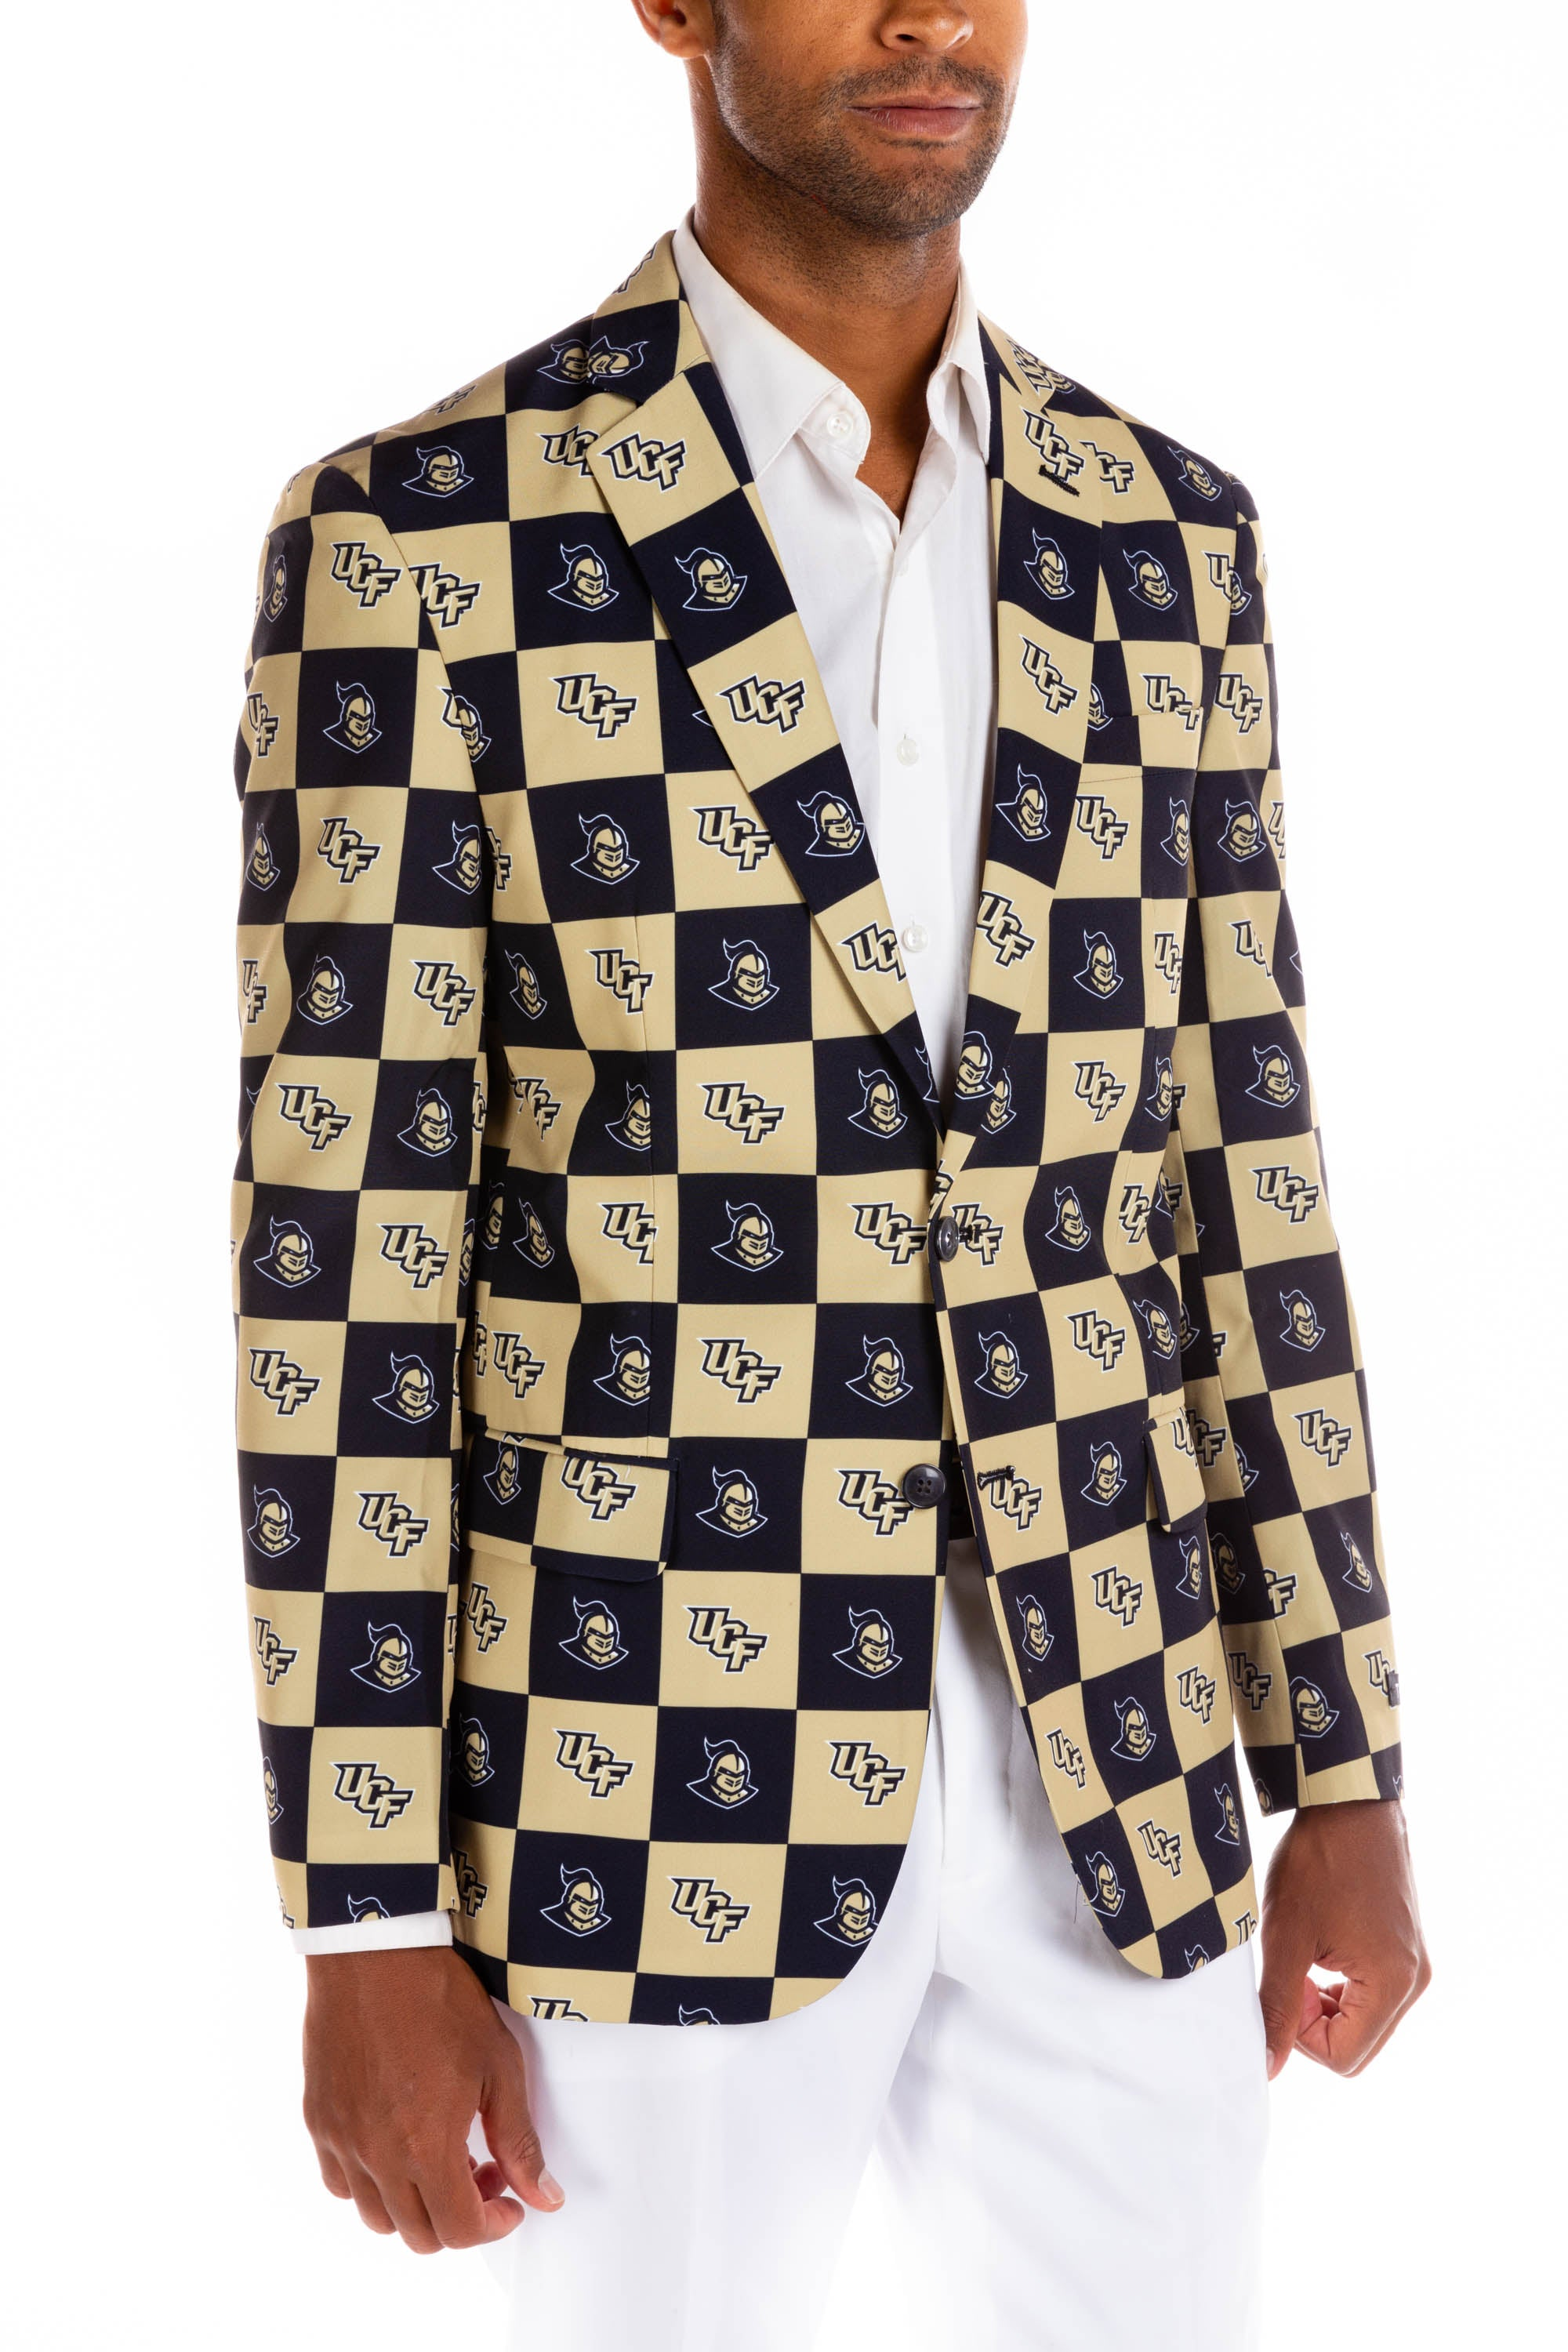 University of Central Florida Gameday Blazer